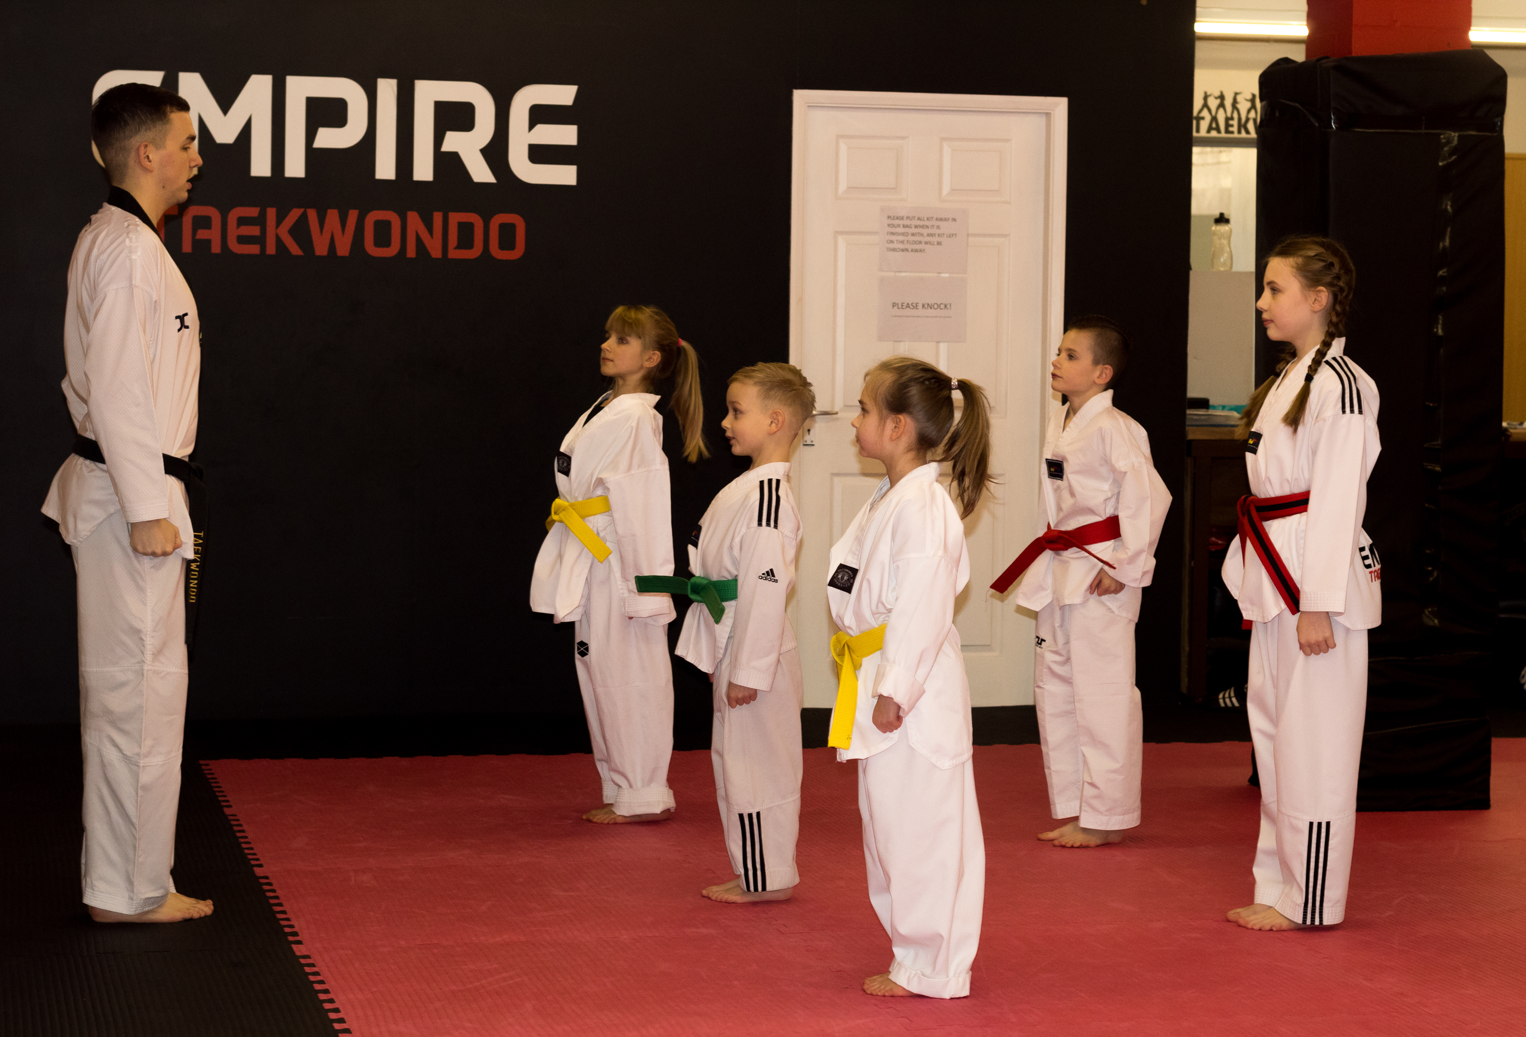 Taekwondo class being held